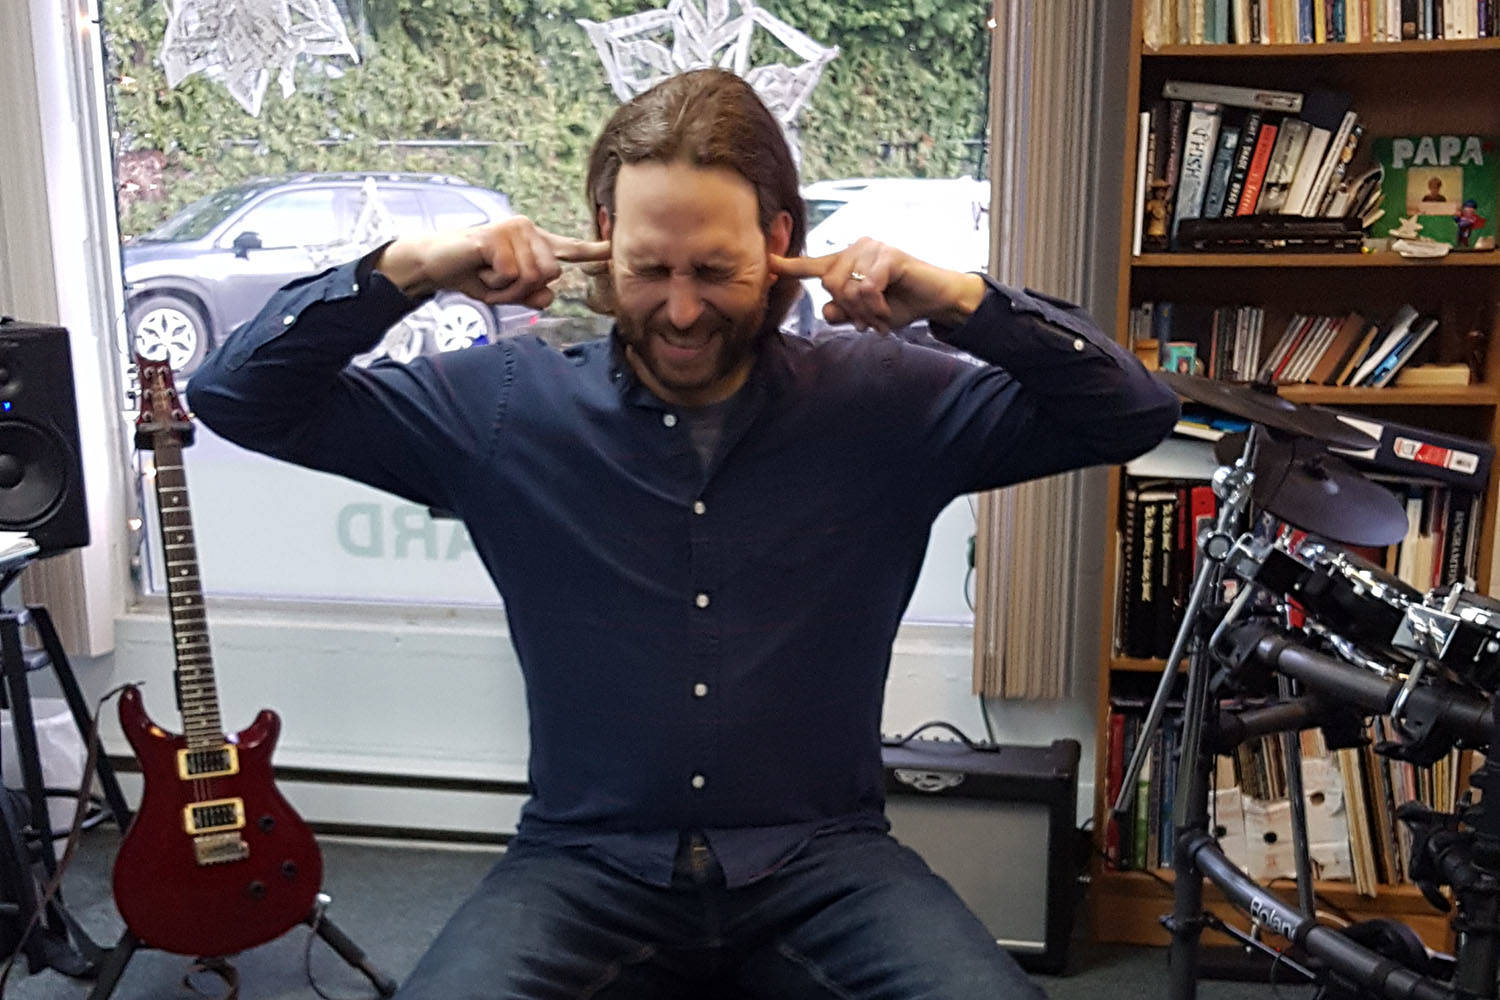 Mike Preston, co-owner of the Brentwood School of Music in Central Saanich, plans to listen to a song he cannot stand for 12 hours straight this Sunday to help raise money for the Mustard Seed Street Church. (Mike Preston/Submitted)